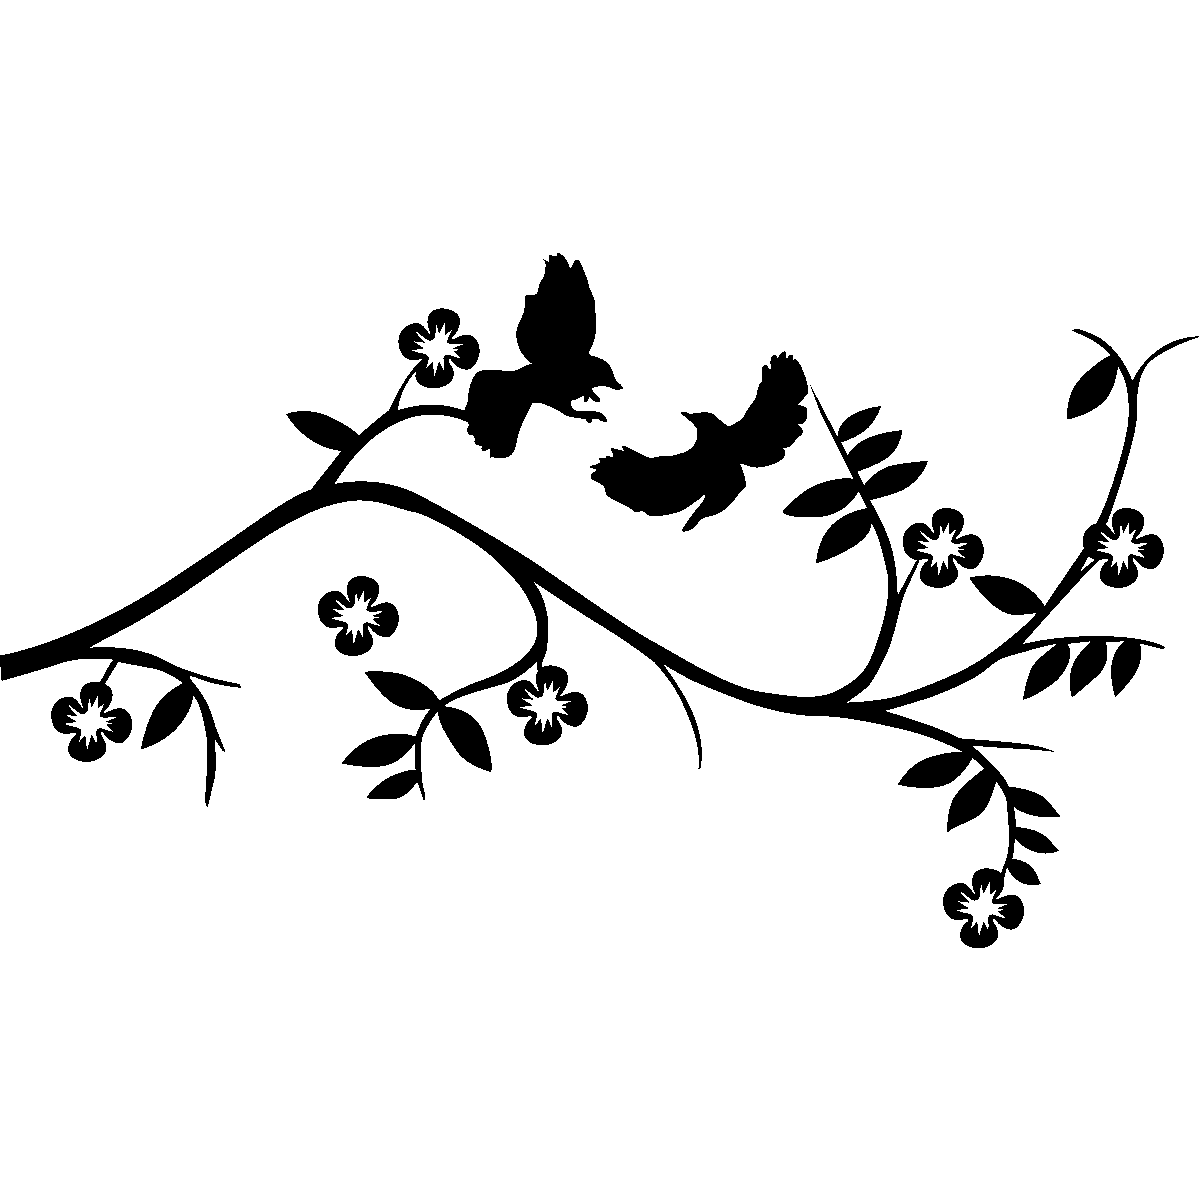 Animals Wall Decals Birds On Branch Wall Decal